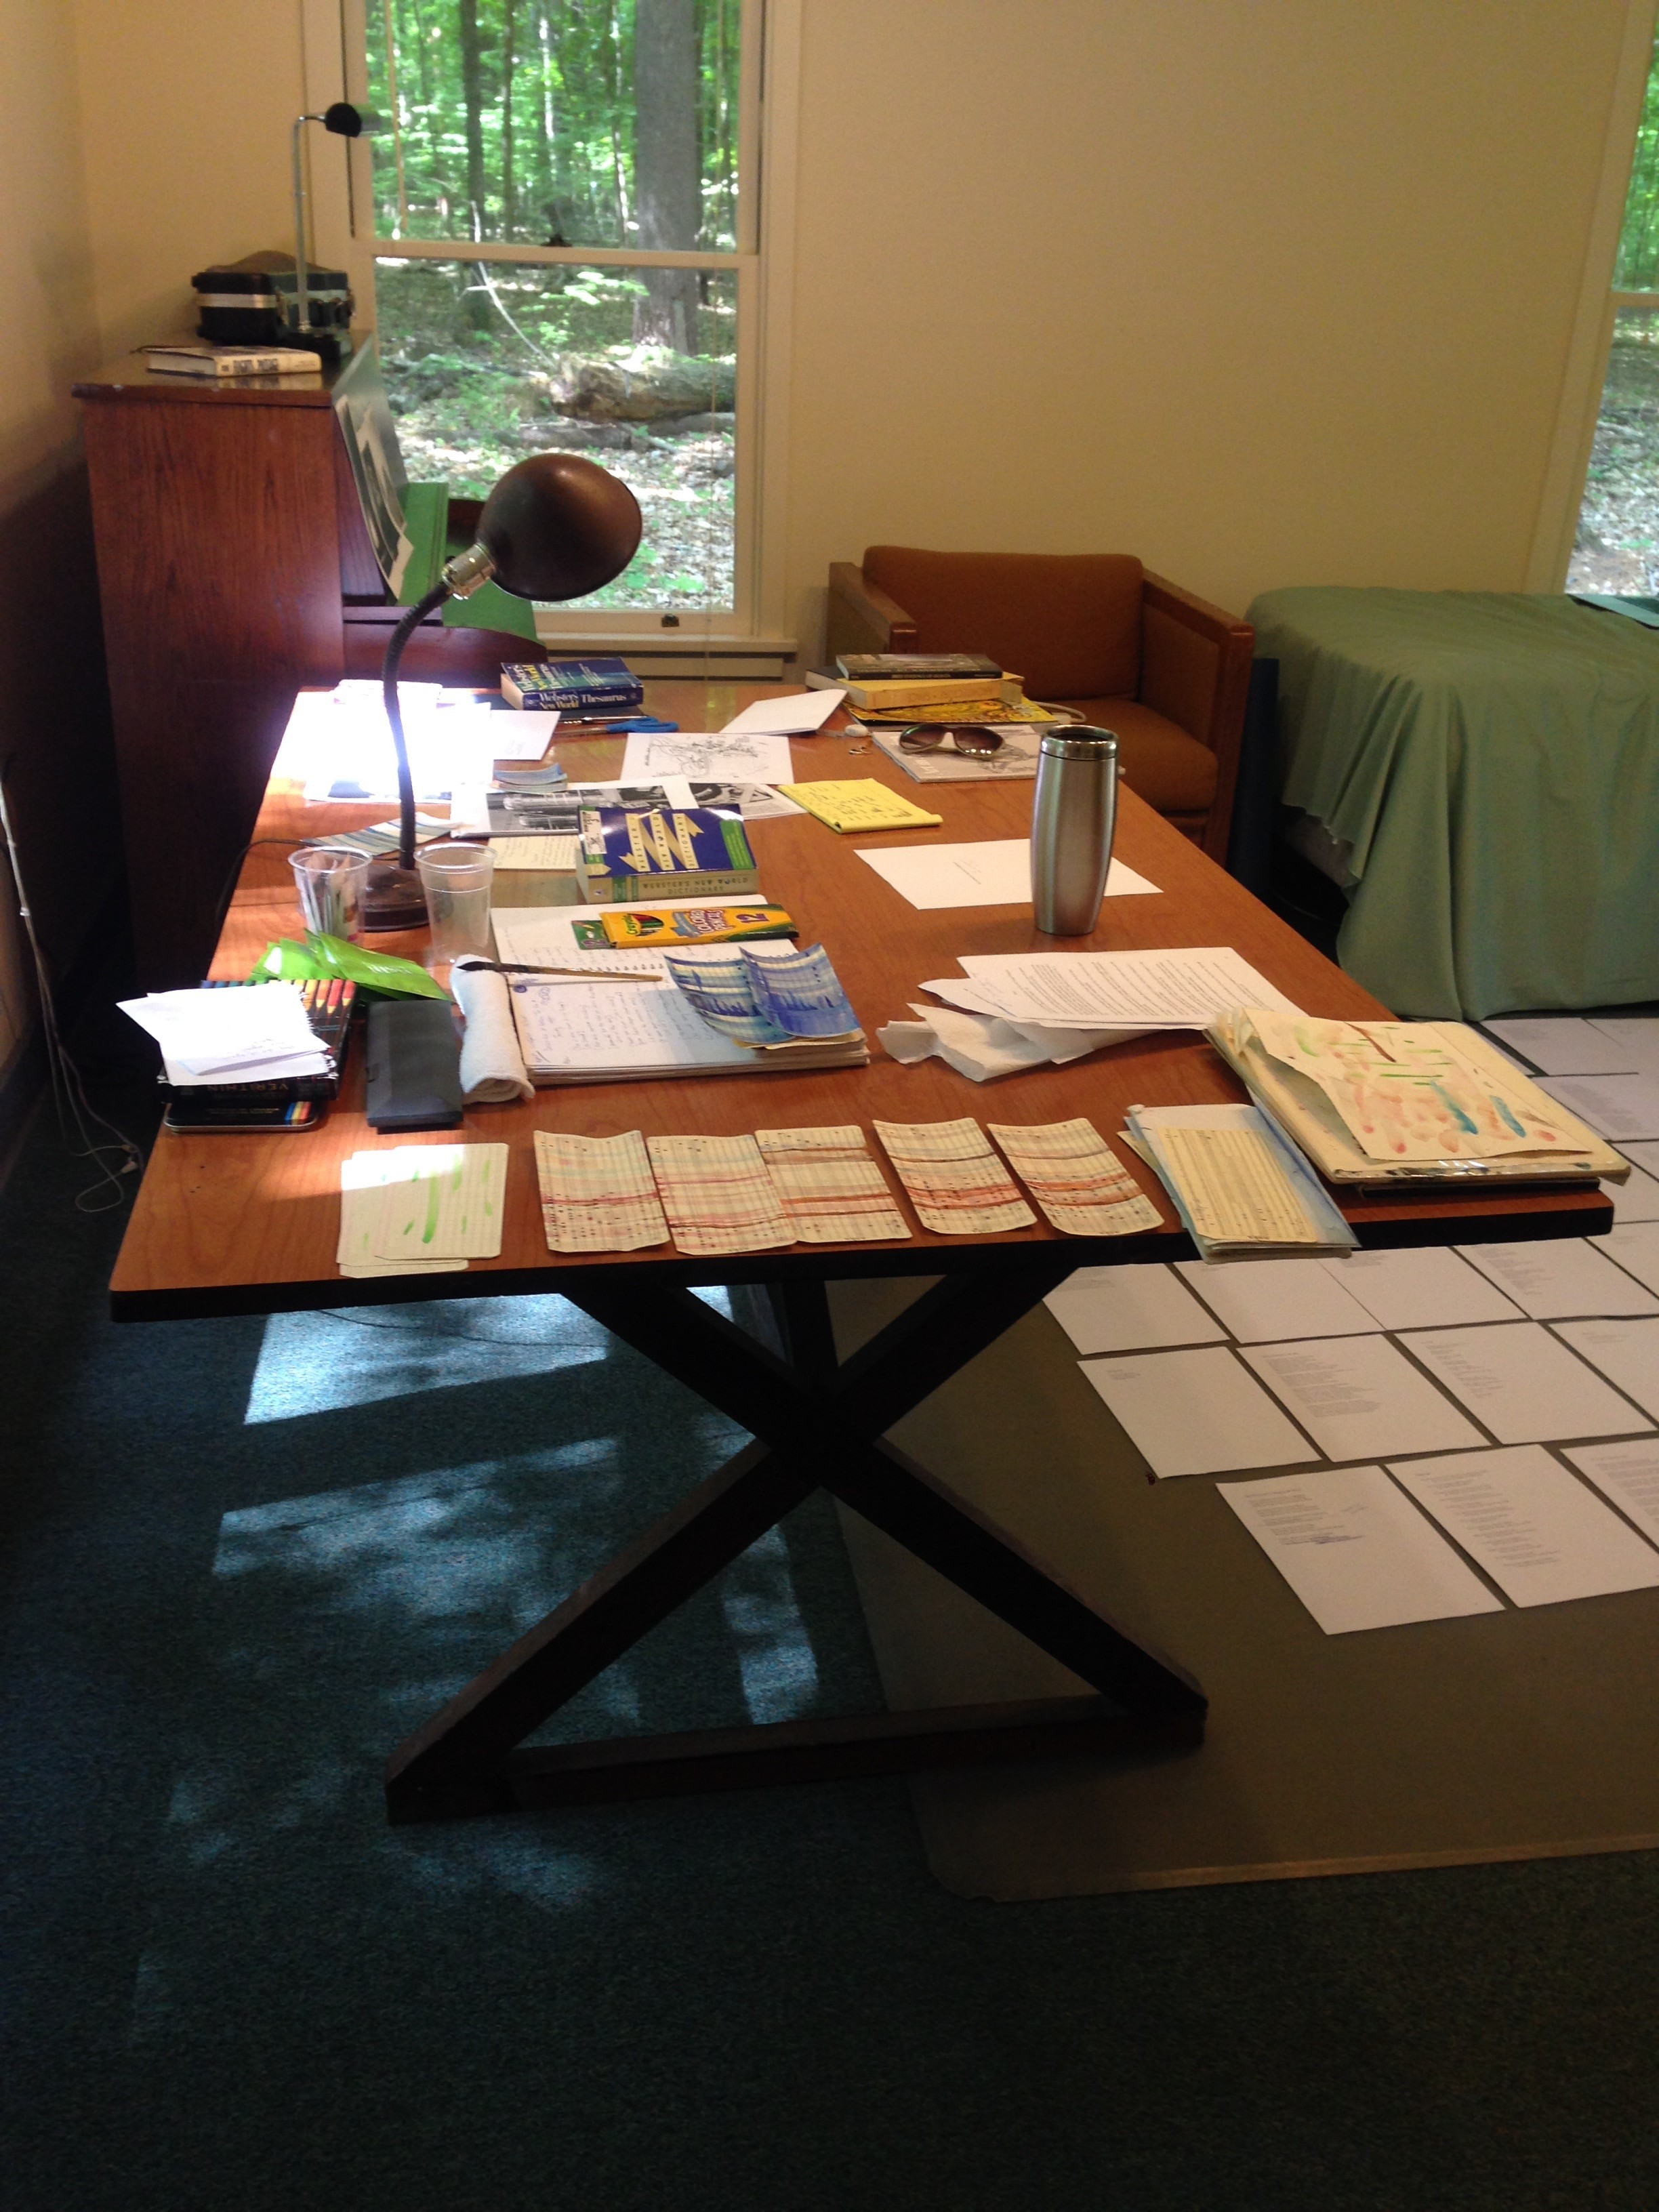 Papers, punch cards, and other materials laid out on a table. A leafy green forest on view through the far window.